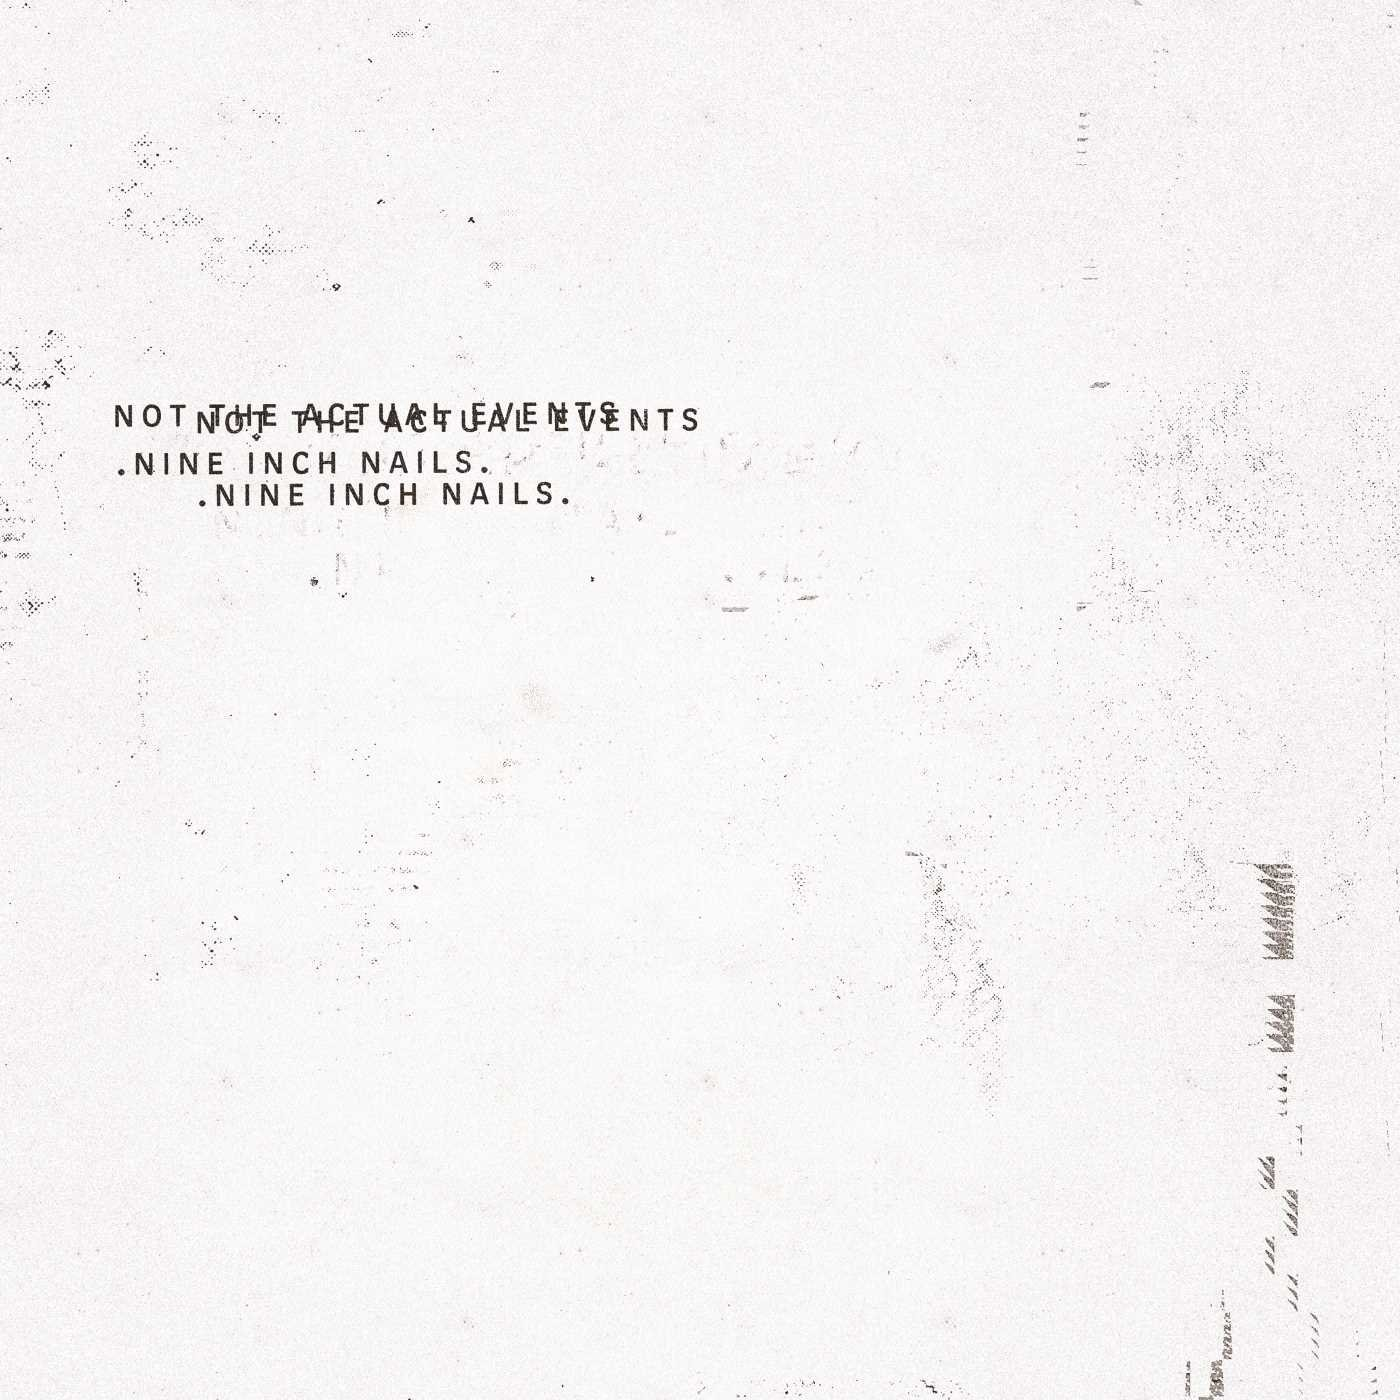 NINE INCH NAILS / ナイン・インチ・ネイルズ / NOT THE ACTUAL EVENTS